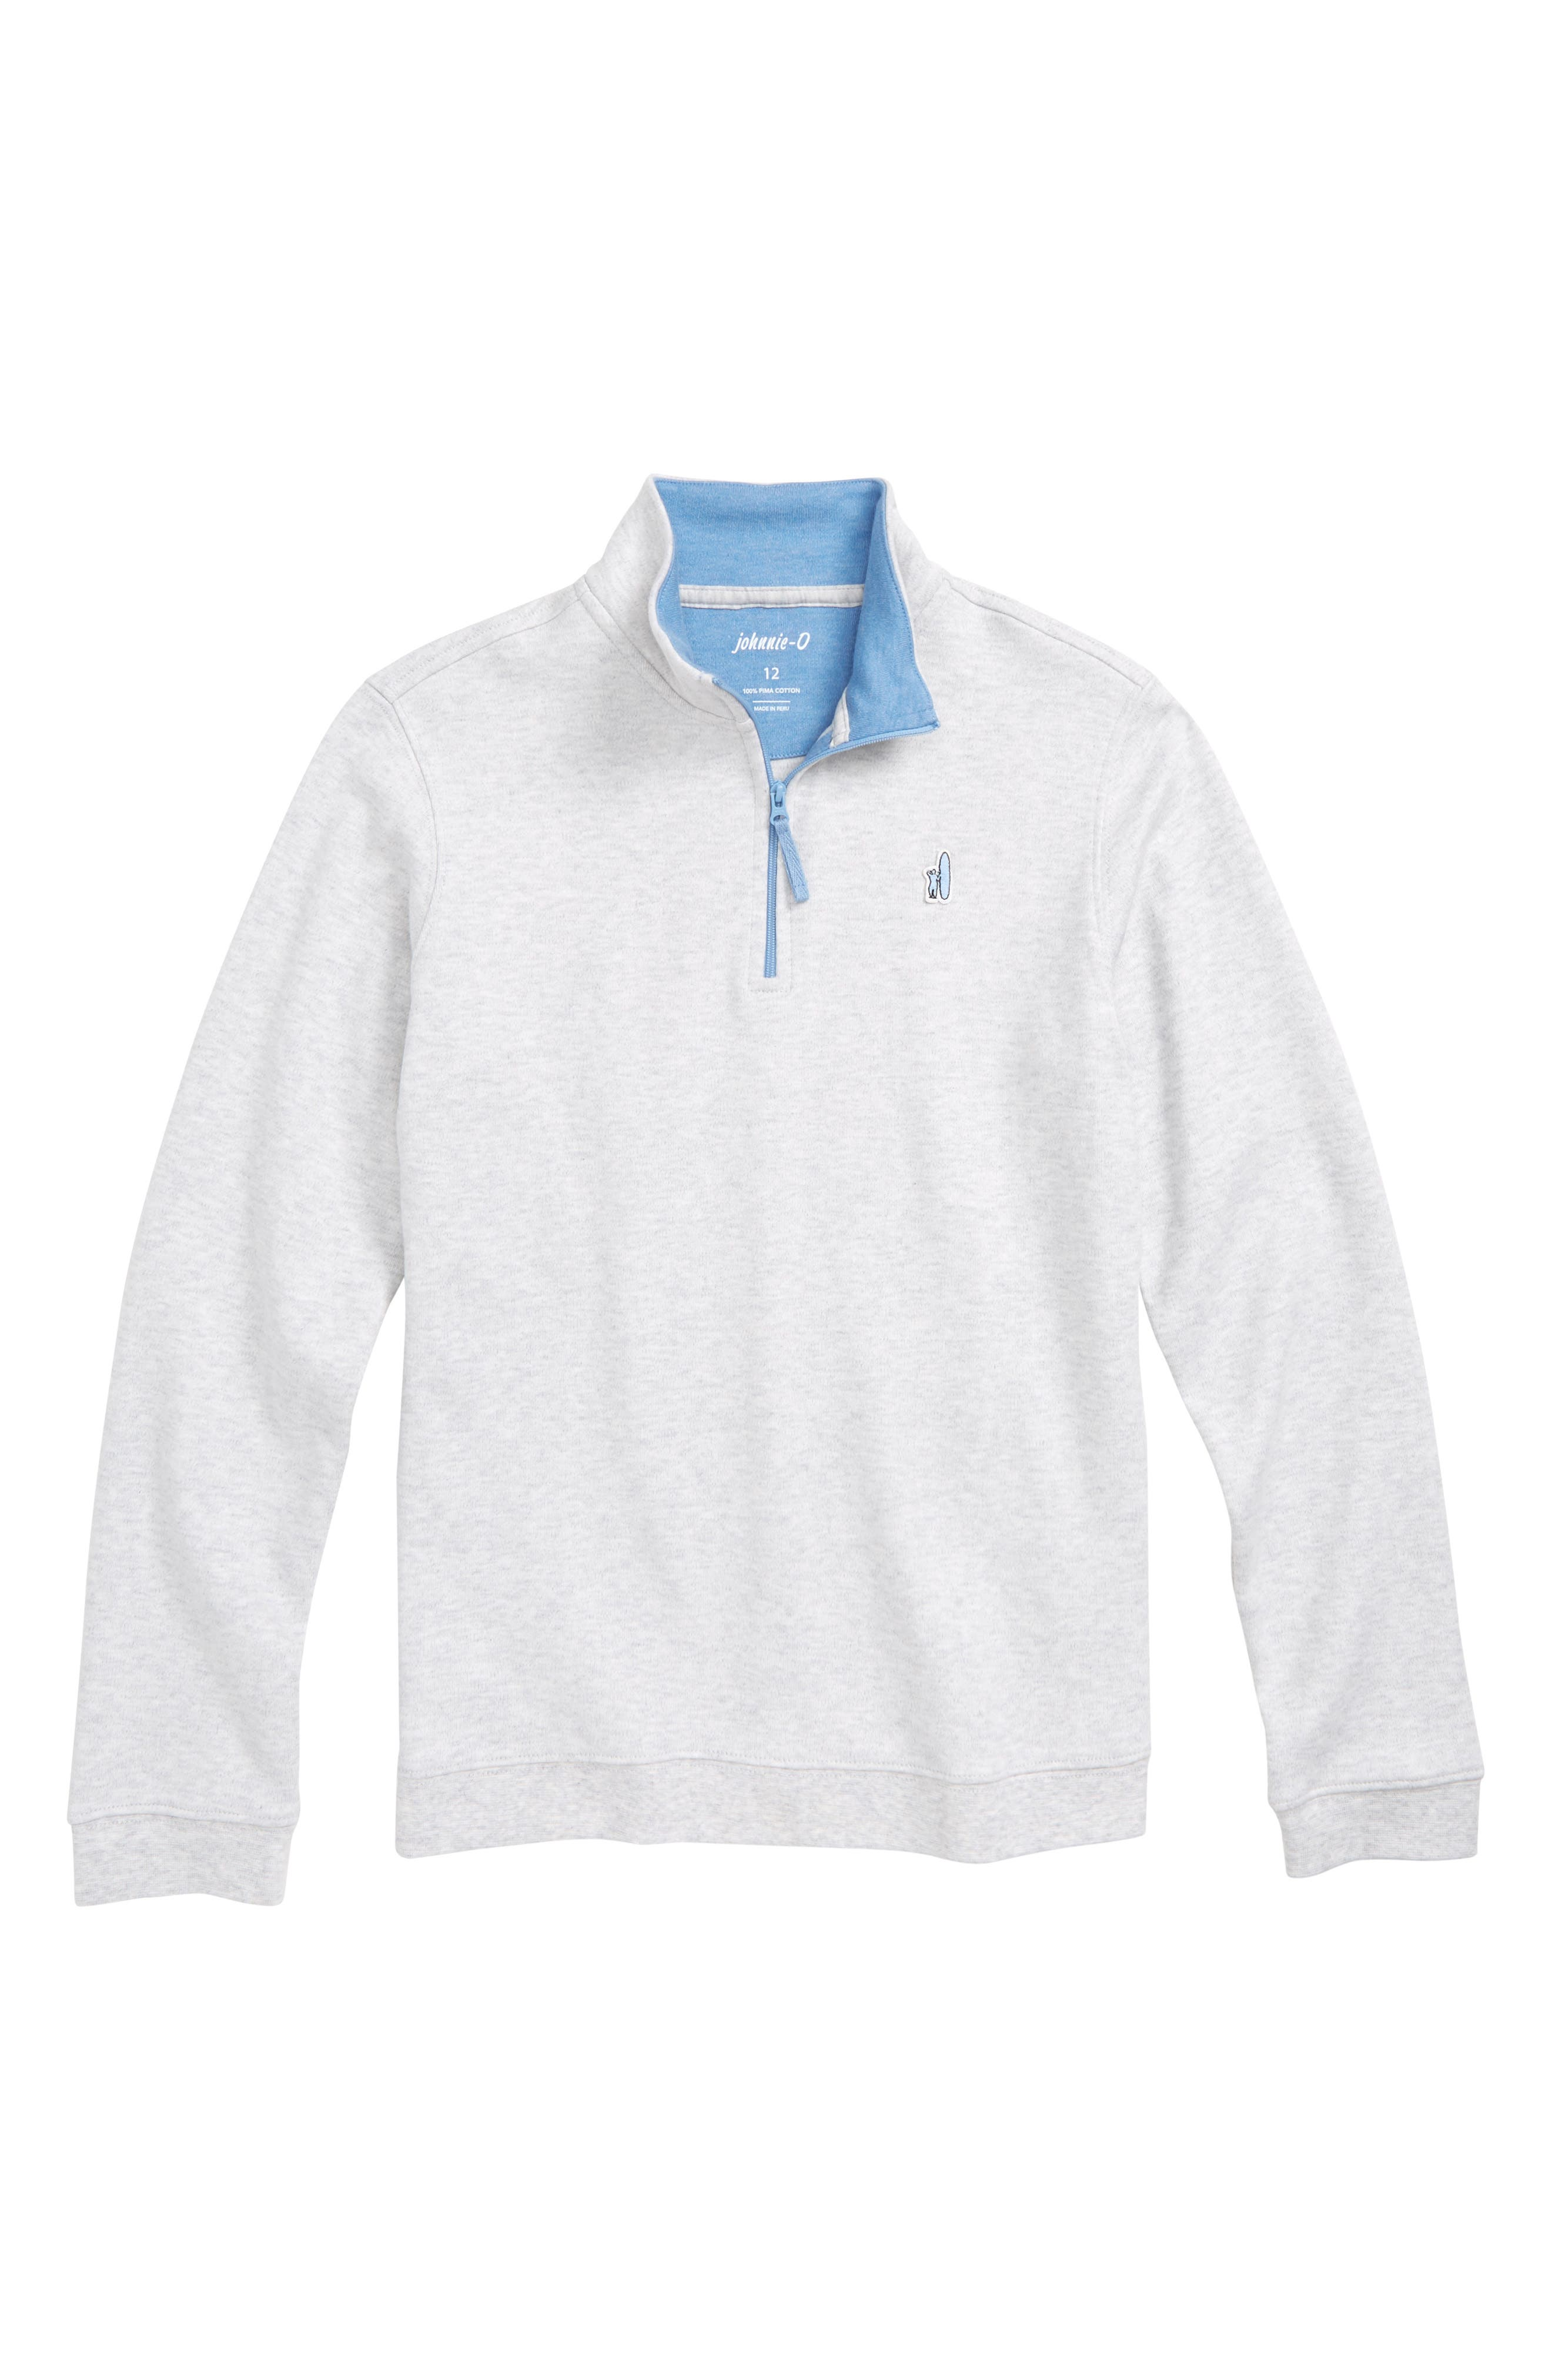 ff30d3a2 Kids' Johnnie-O Apparel: T-Shirts, Jeans, Pants & Hoodies | Nordstrom